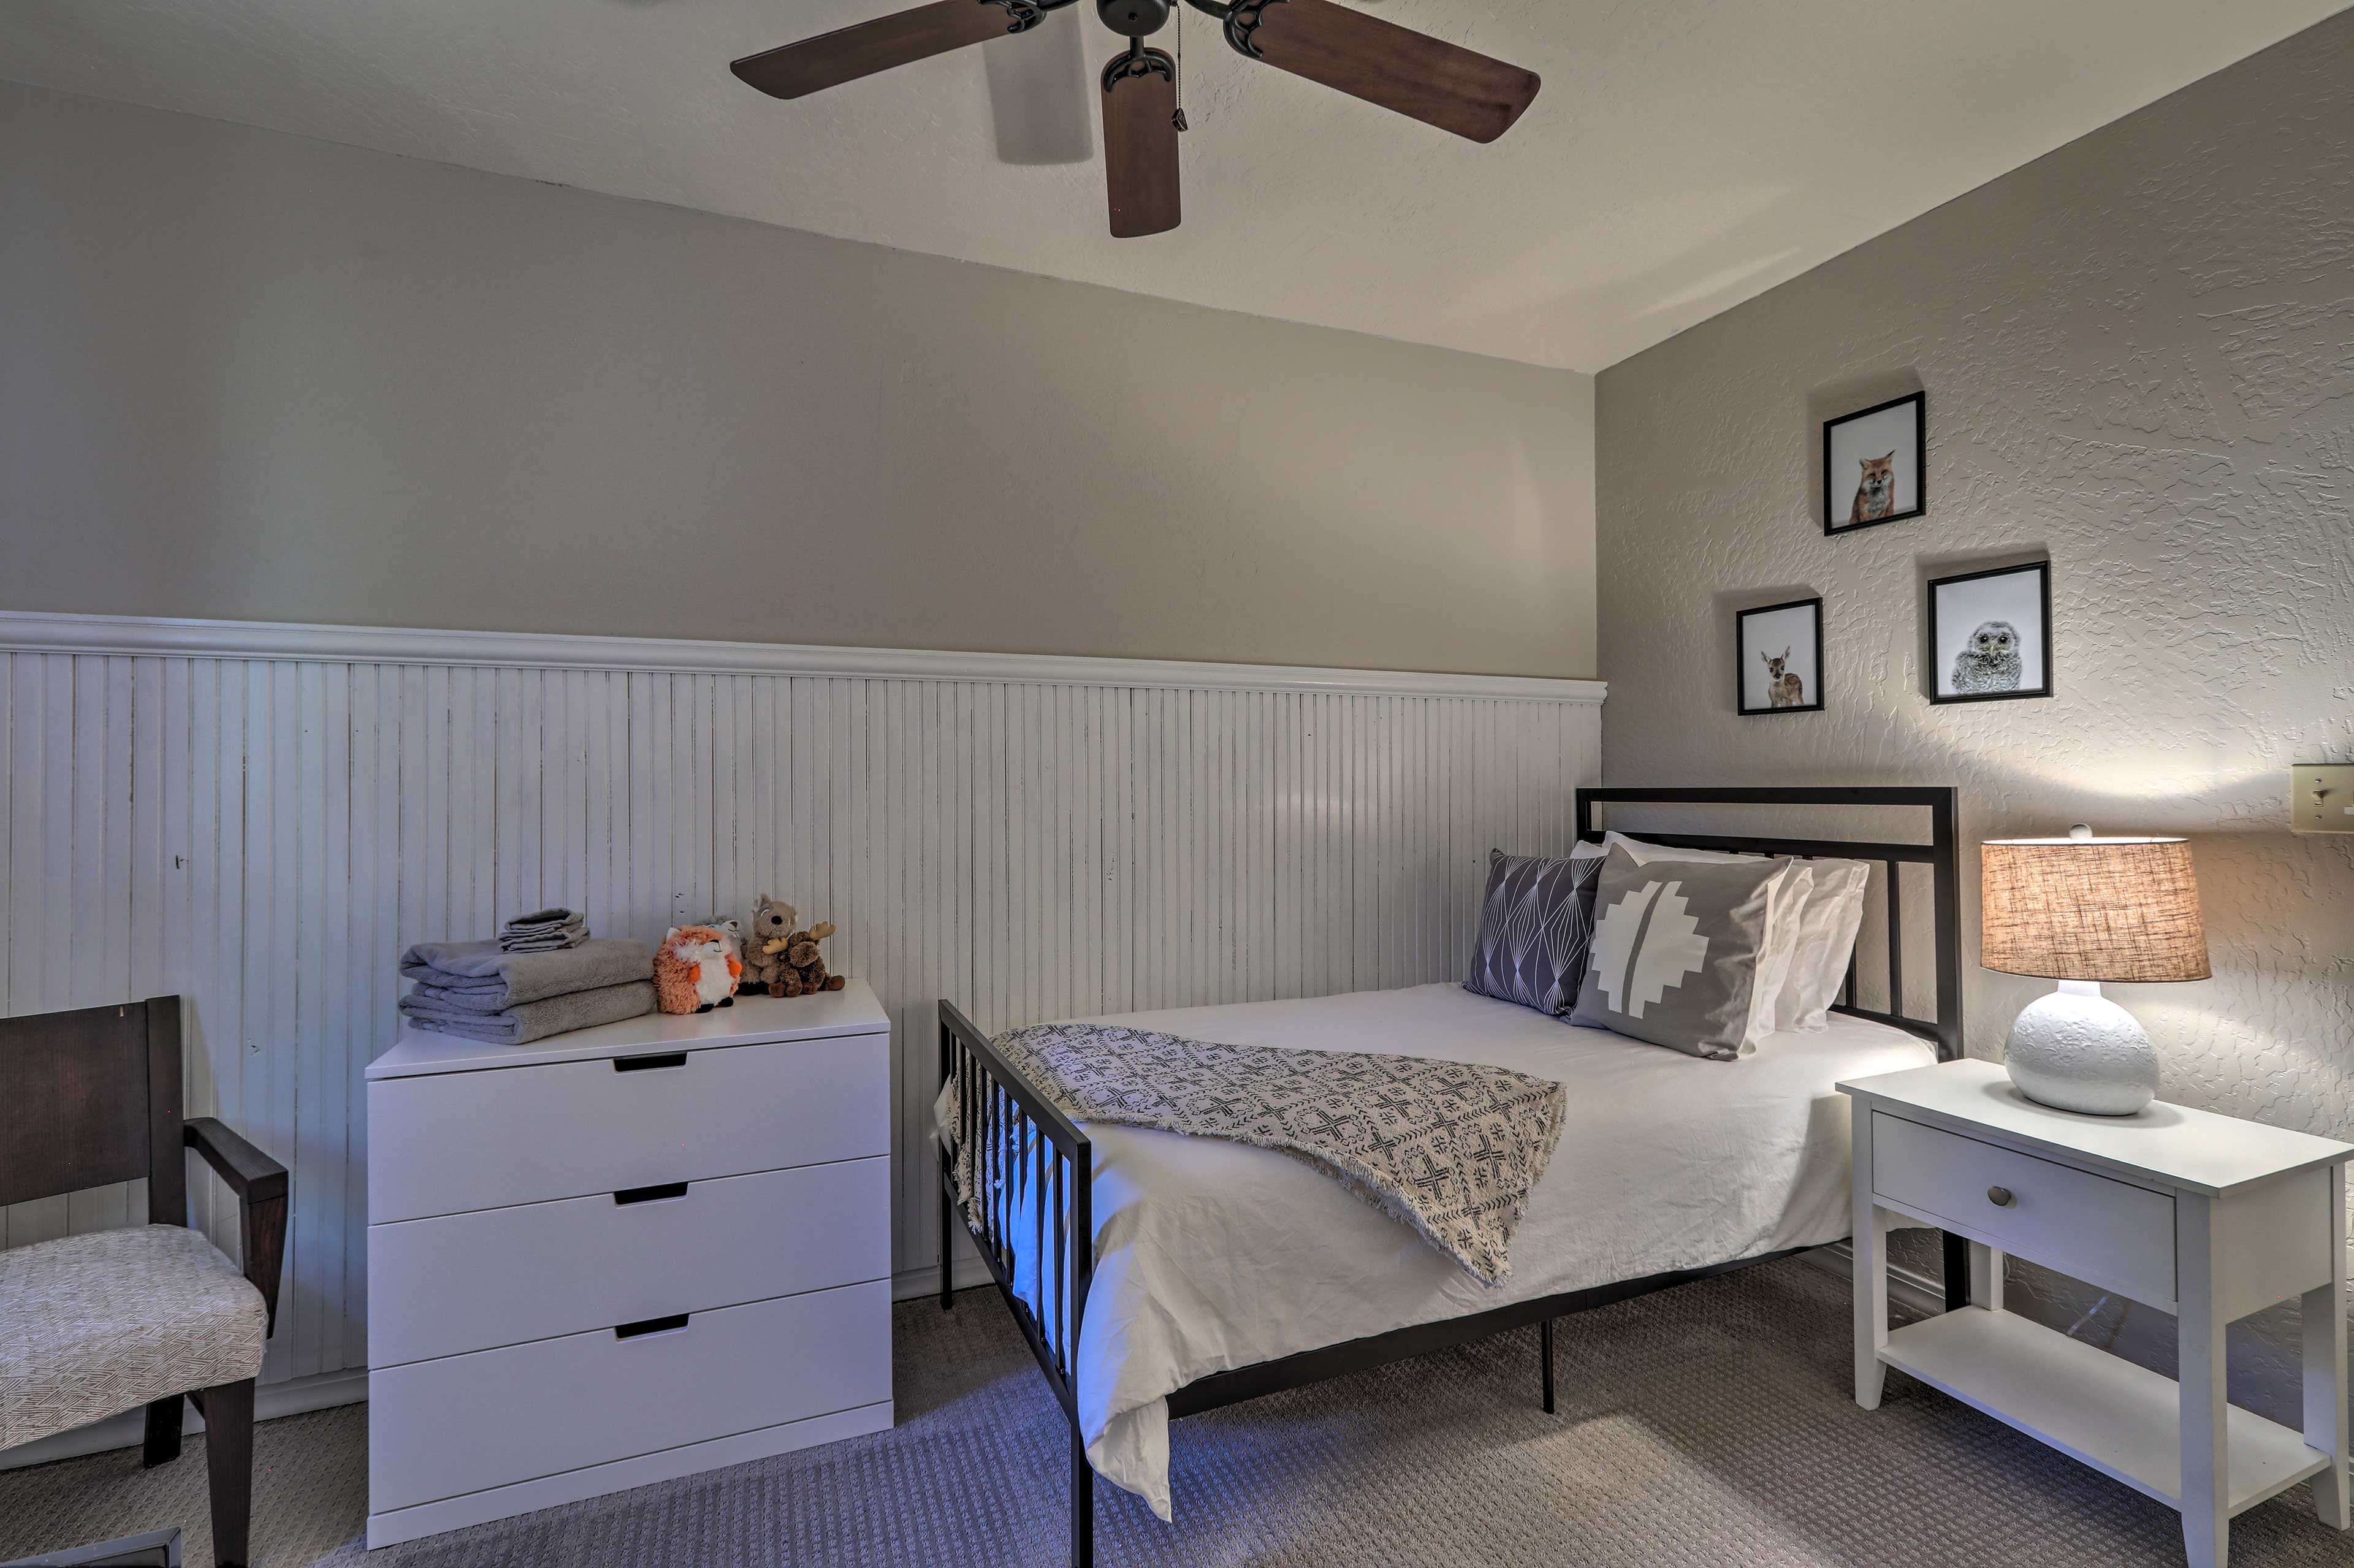 The fifth bedroom also has a set of twin beds.